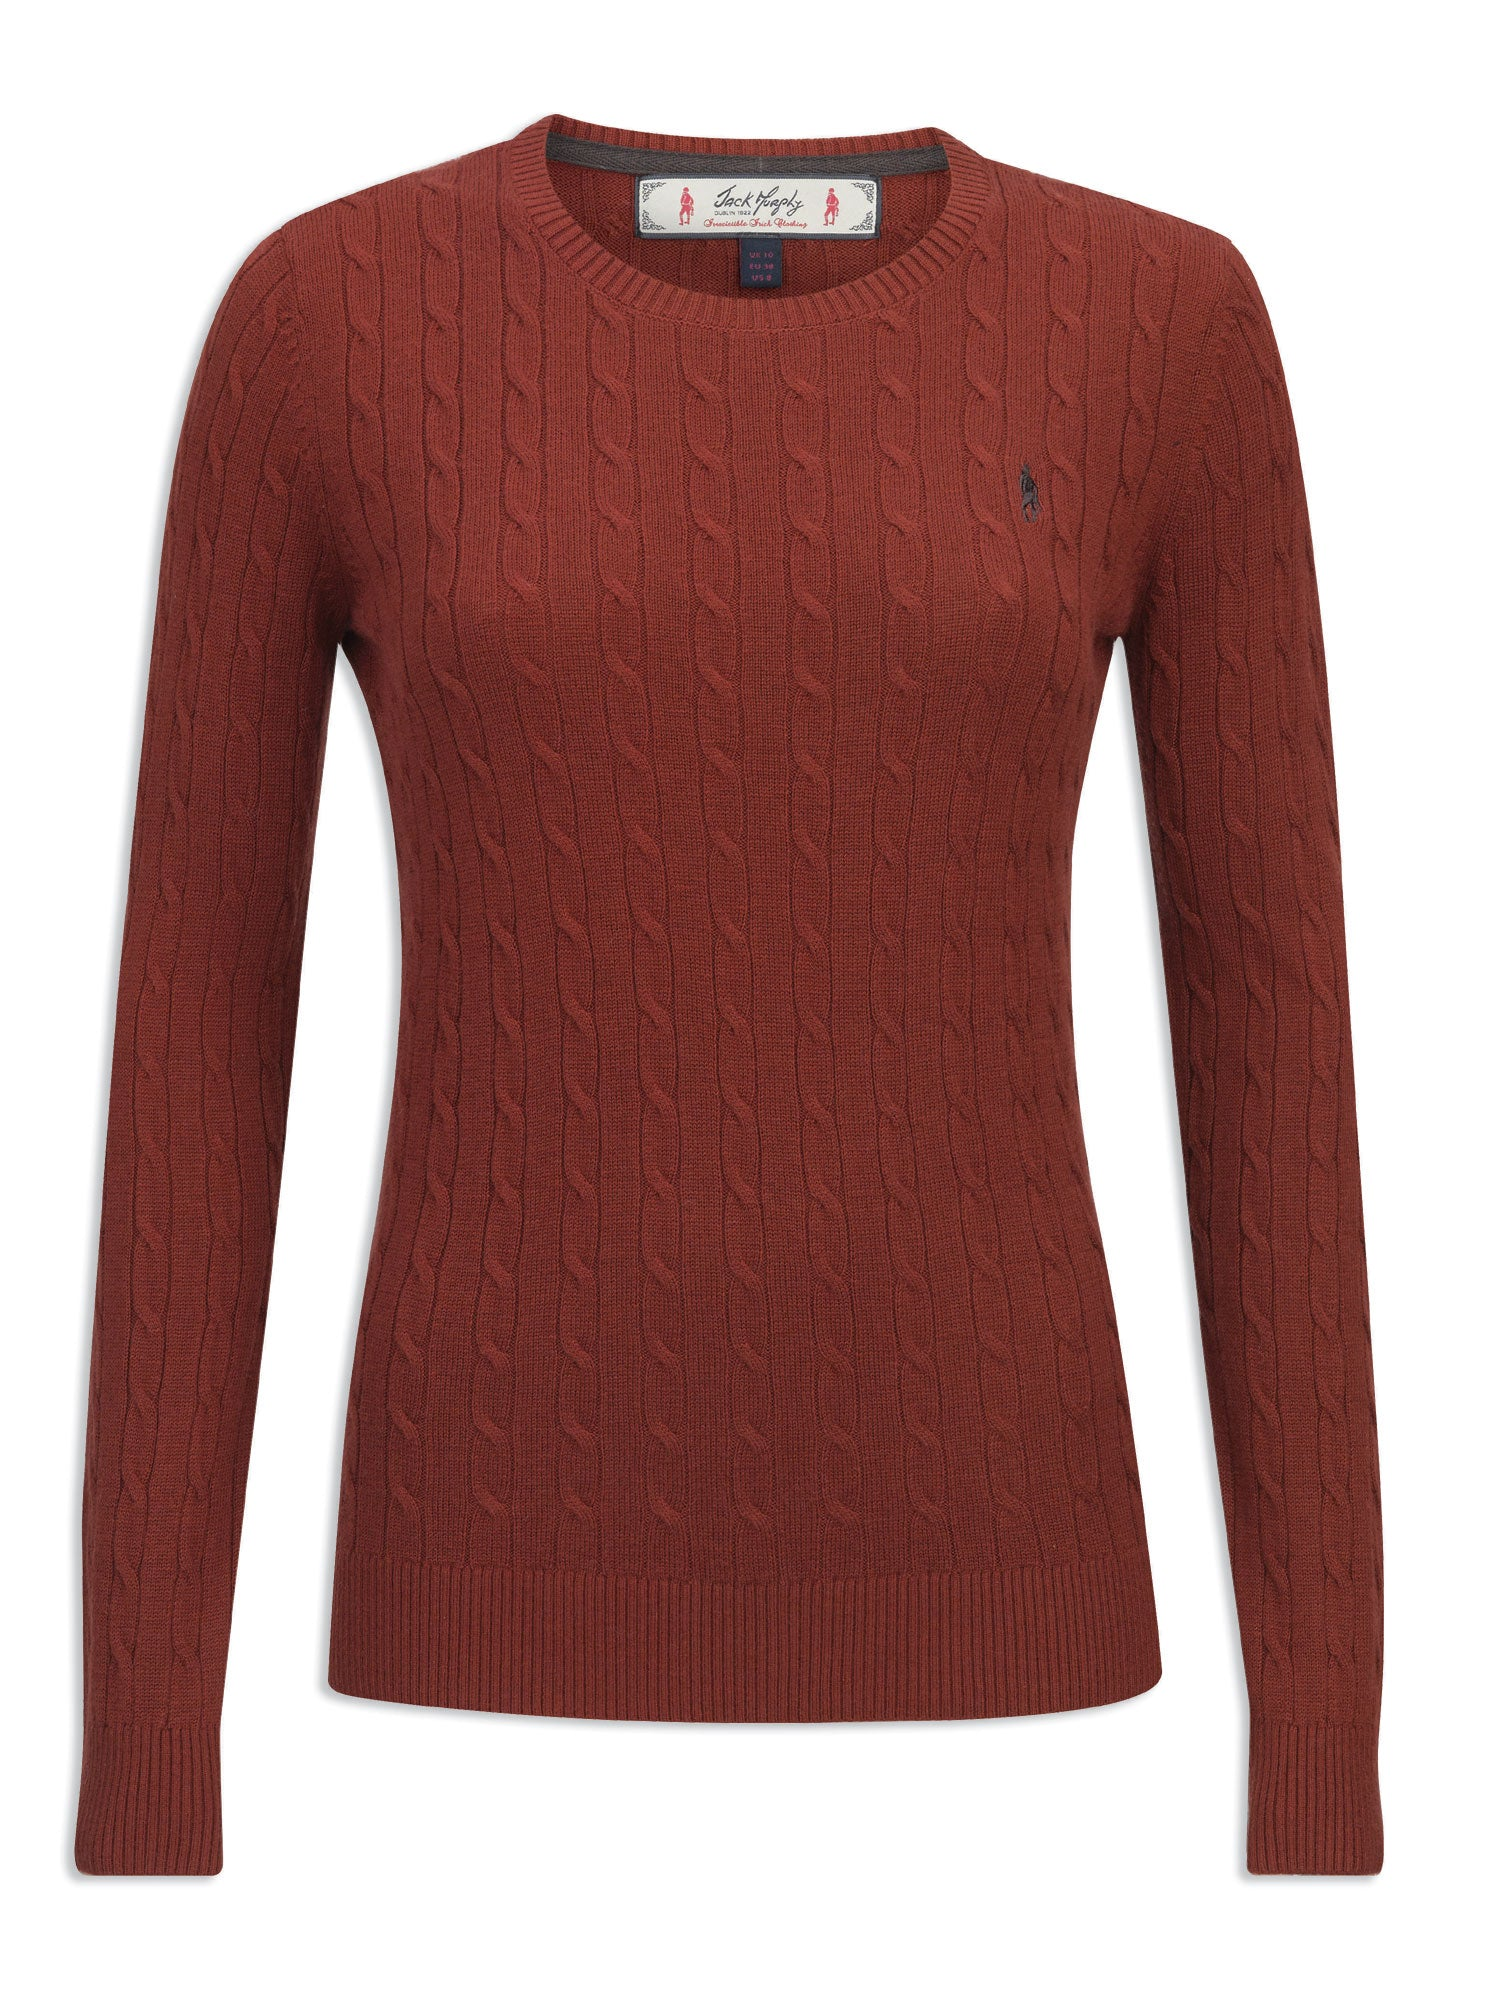 Jack Murphy Freda Crew Neck Sweater | Red Brick